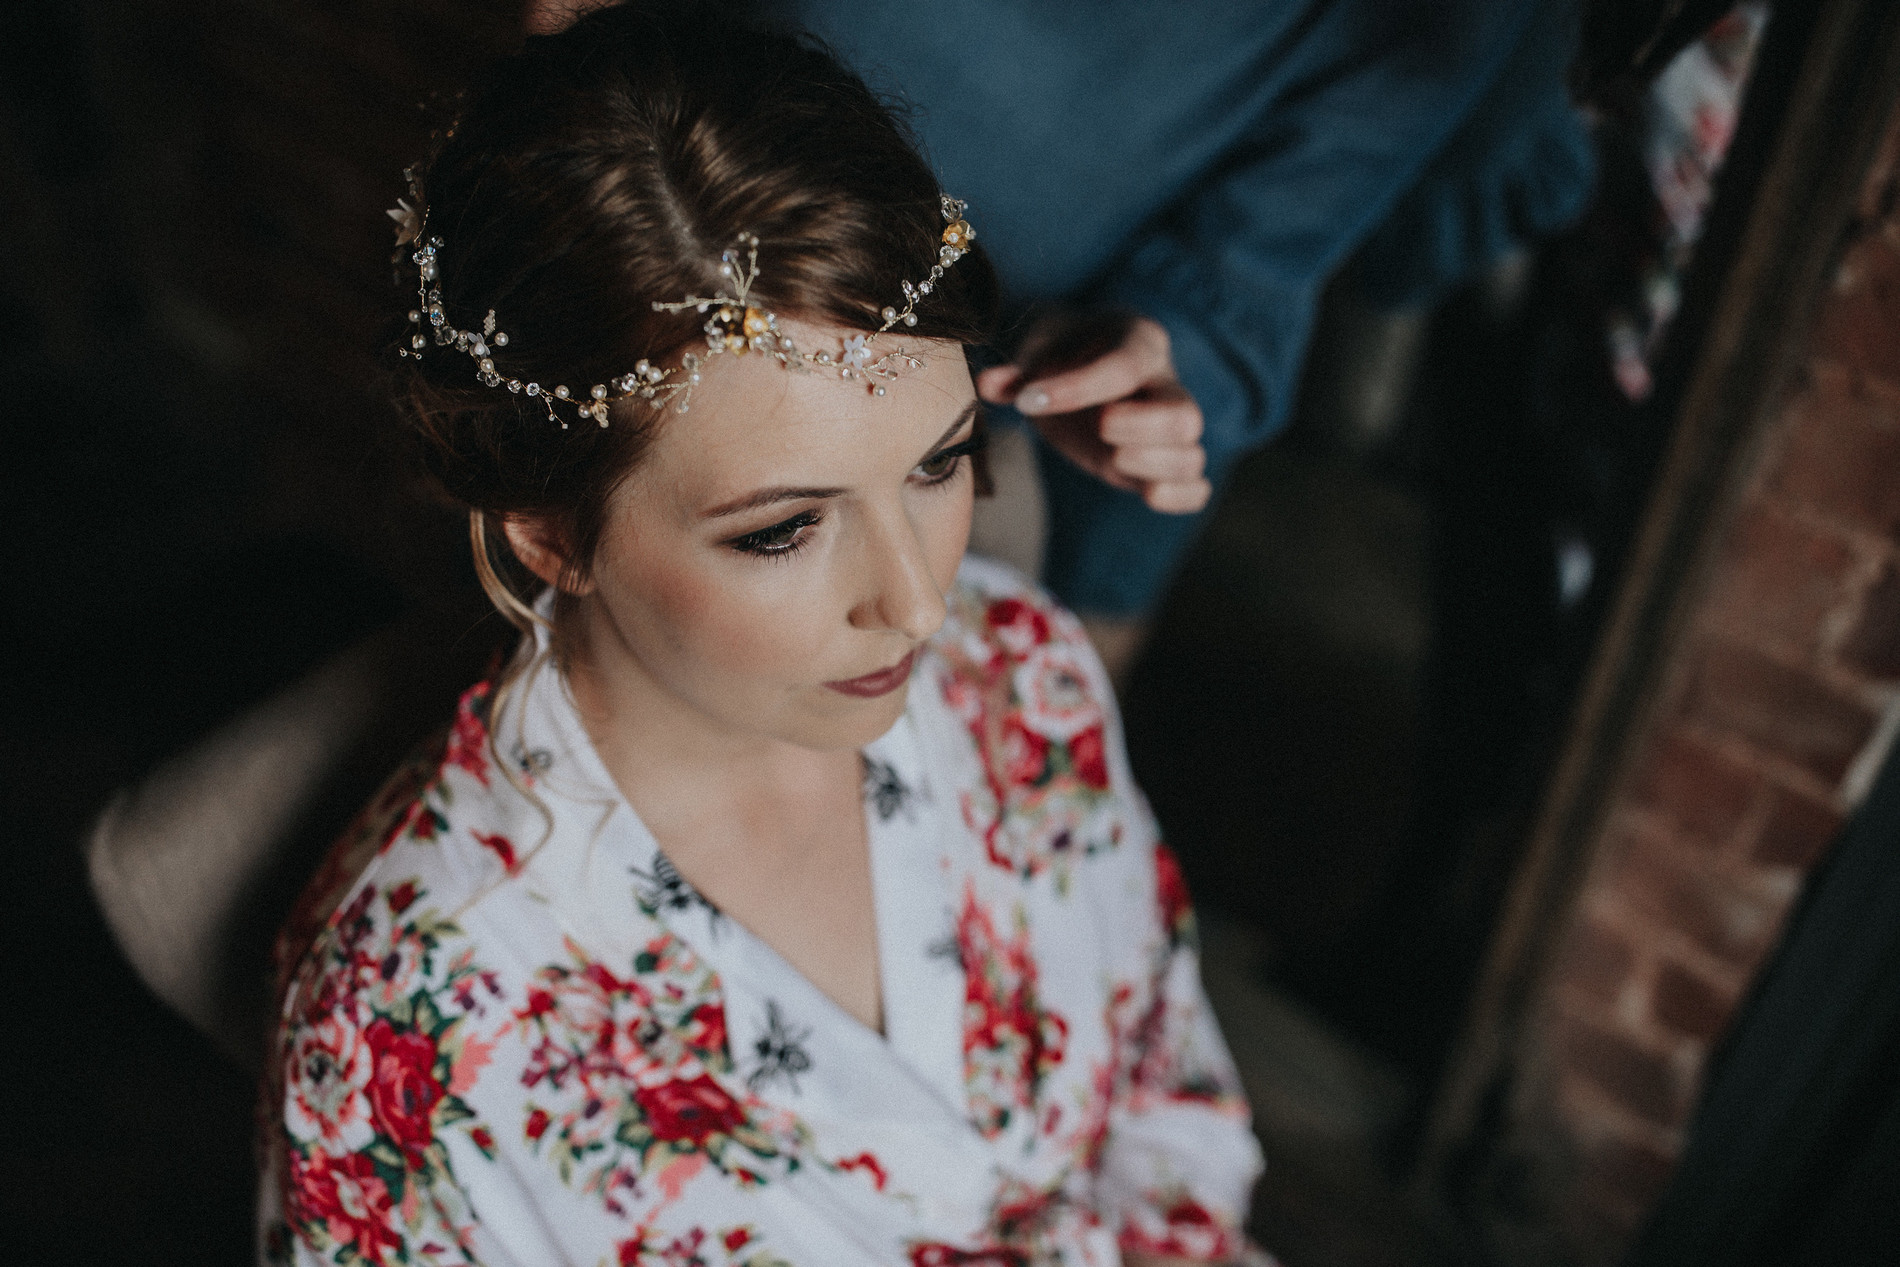 Le Petit Chateau Wedding - Victoria Farr Make Up Artist Hair Stylist